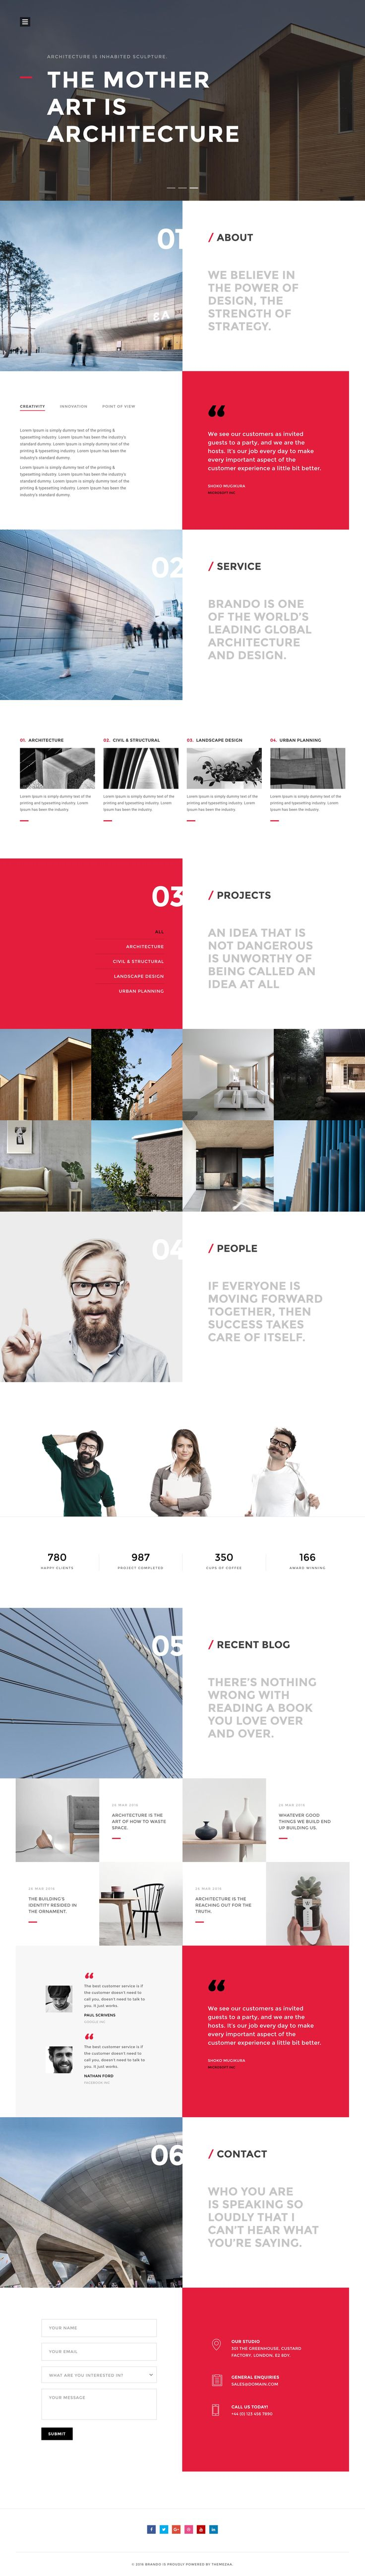 'Brando' is a One Page WordPress theme with 10 pre-made layouts, covering multiple industries. The design is definitely above par for a WordPress theme with great typography and lovely whitespace – in all the layouts. My favorite is the Architecture option featured here. Additional layouts include digital agency, personal page, spa, photography, wedding, restaurant, travel and even includes a neat launching soon page. Great to know the WordPress theme comes with Visual Composer page builder valu